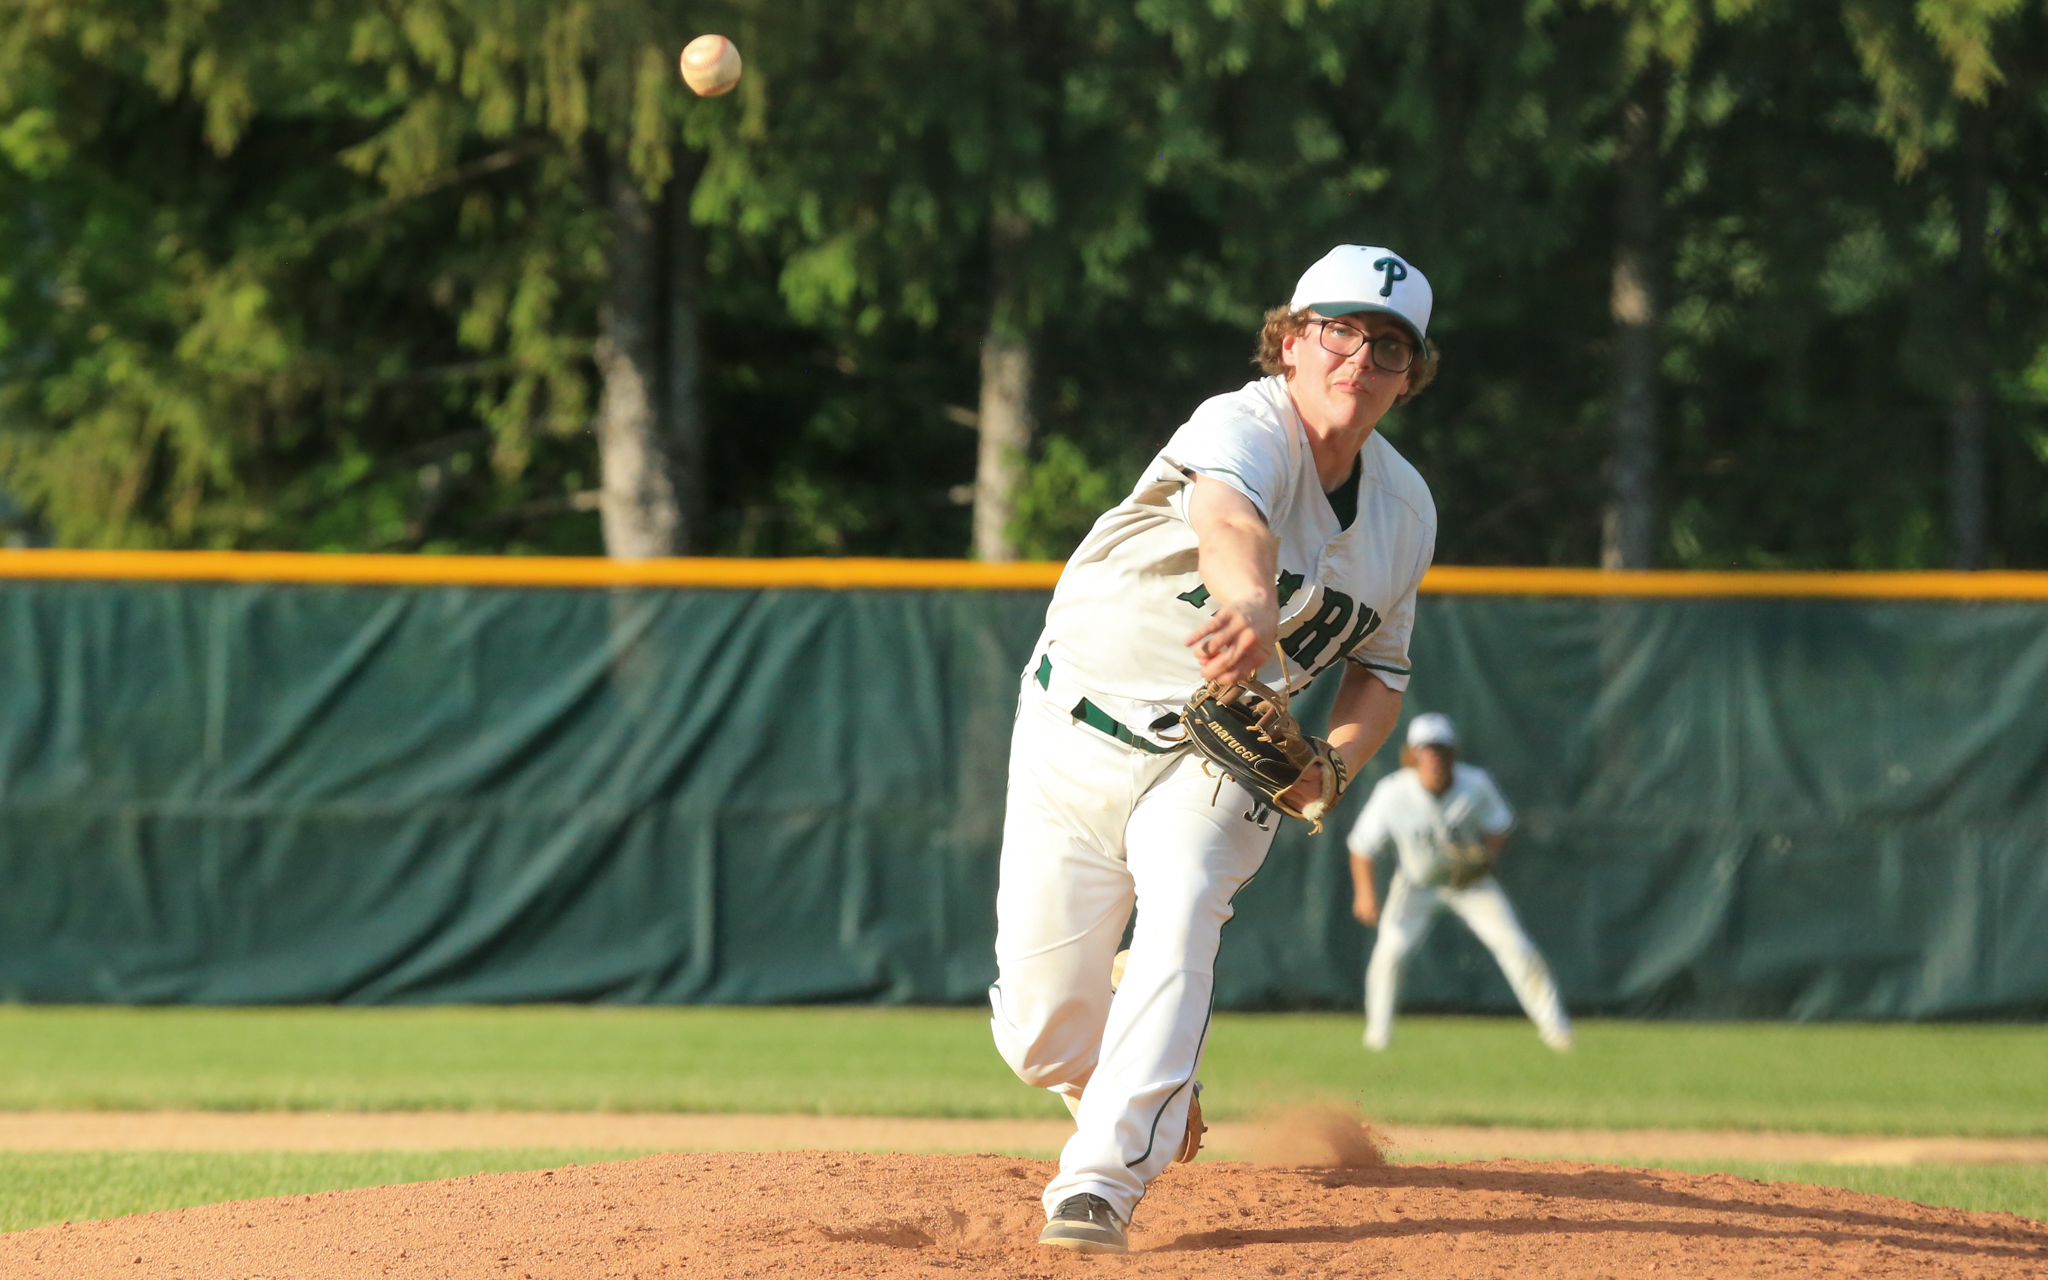 Park of Cottage Grove's Sam Janski struck out five batters and had four RBIs in the second game of the Class 4A, Section 3 championship in Burnsville. The Wolfpack defeated the Wildcats twice, 5-0 and 9-3. Photo by Jeff Lawler, SportsEngine